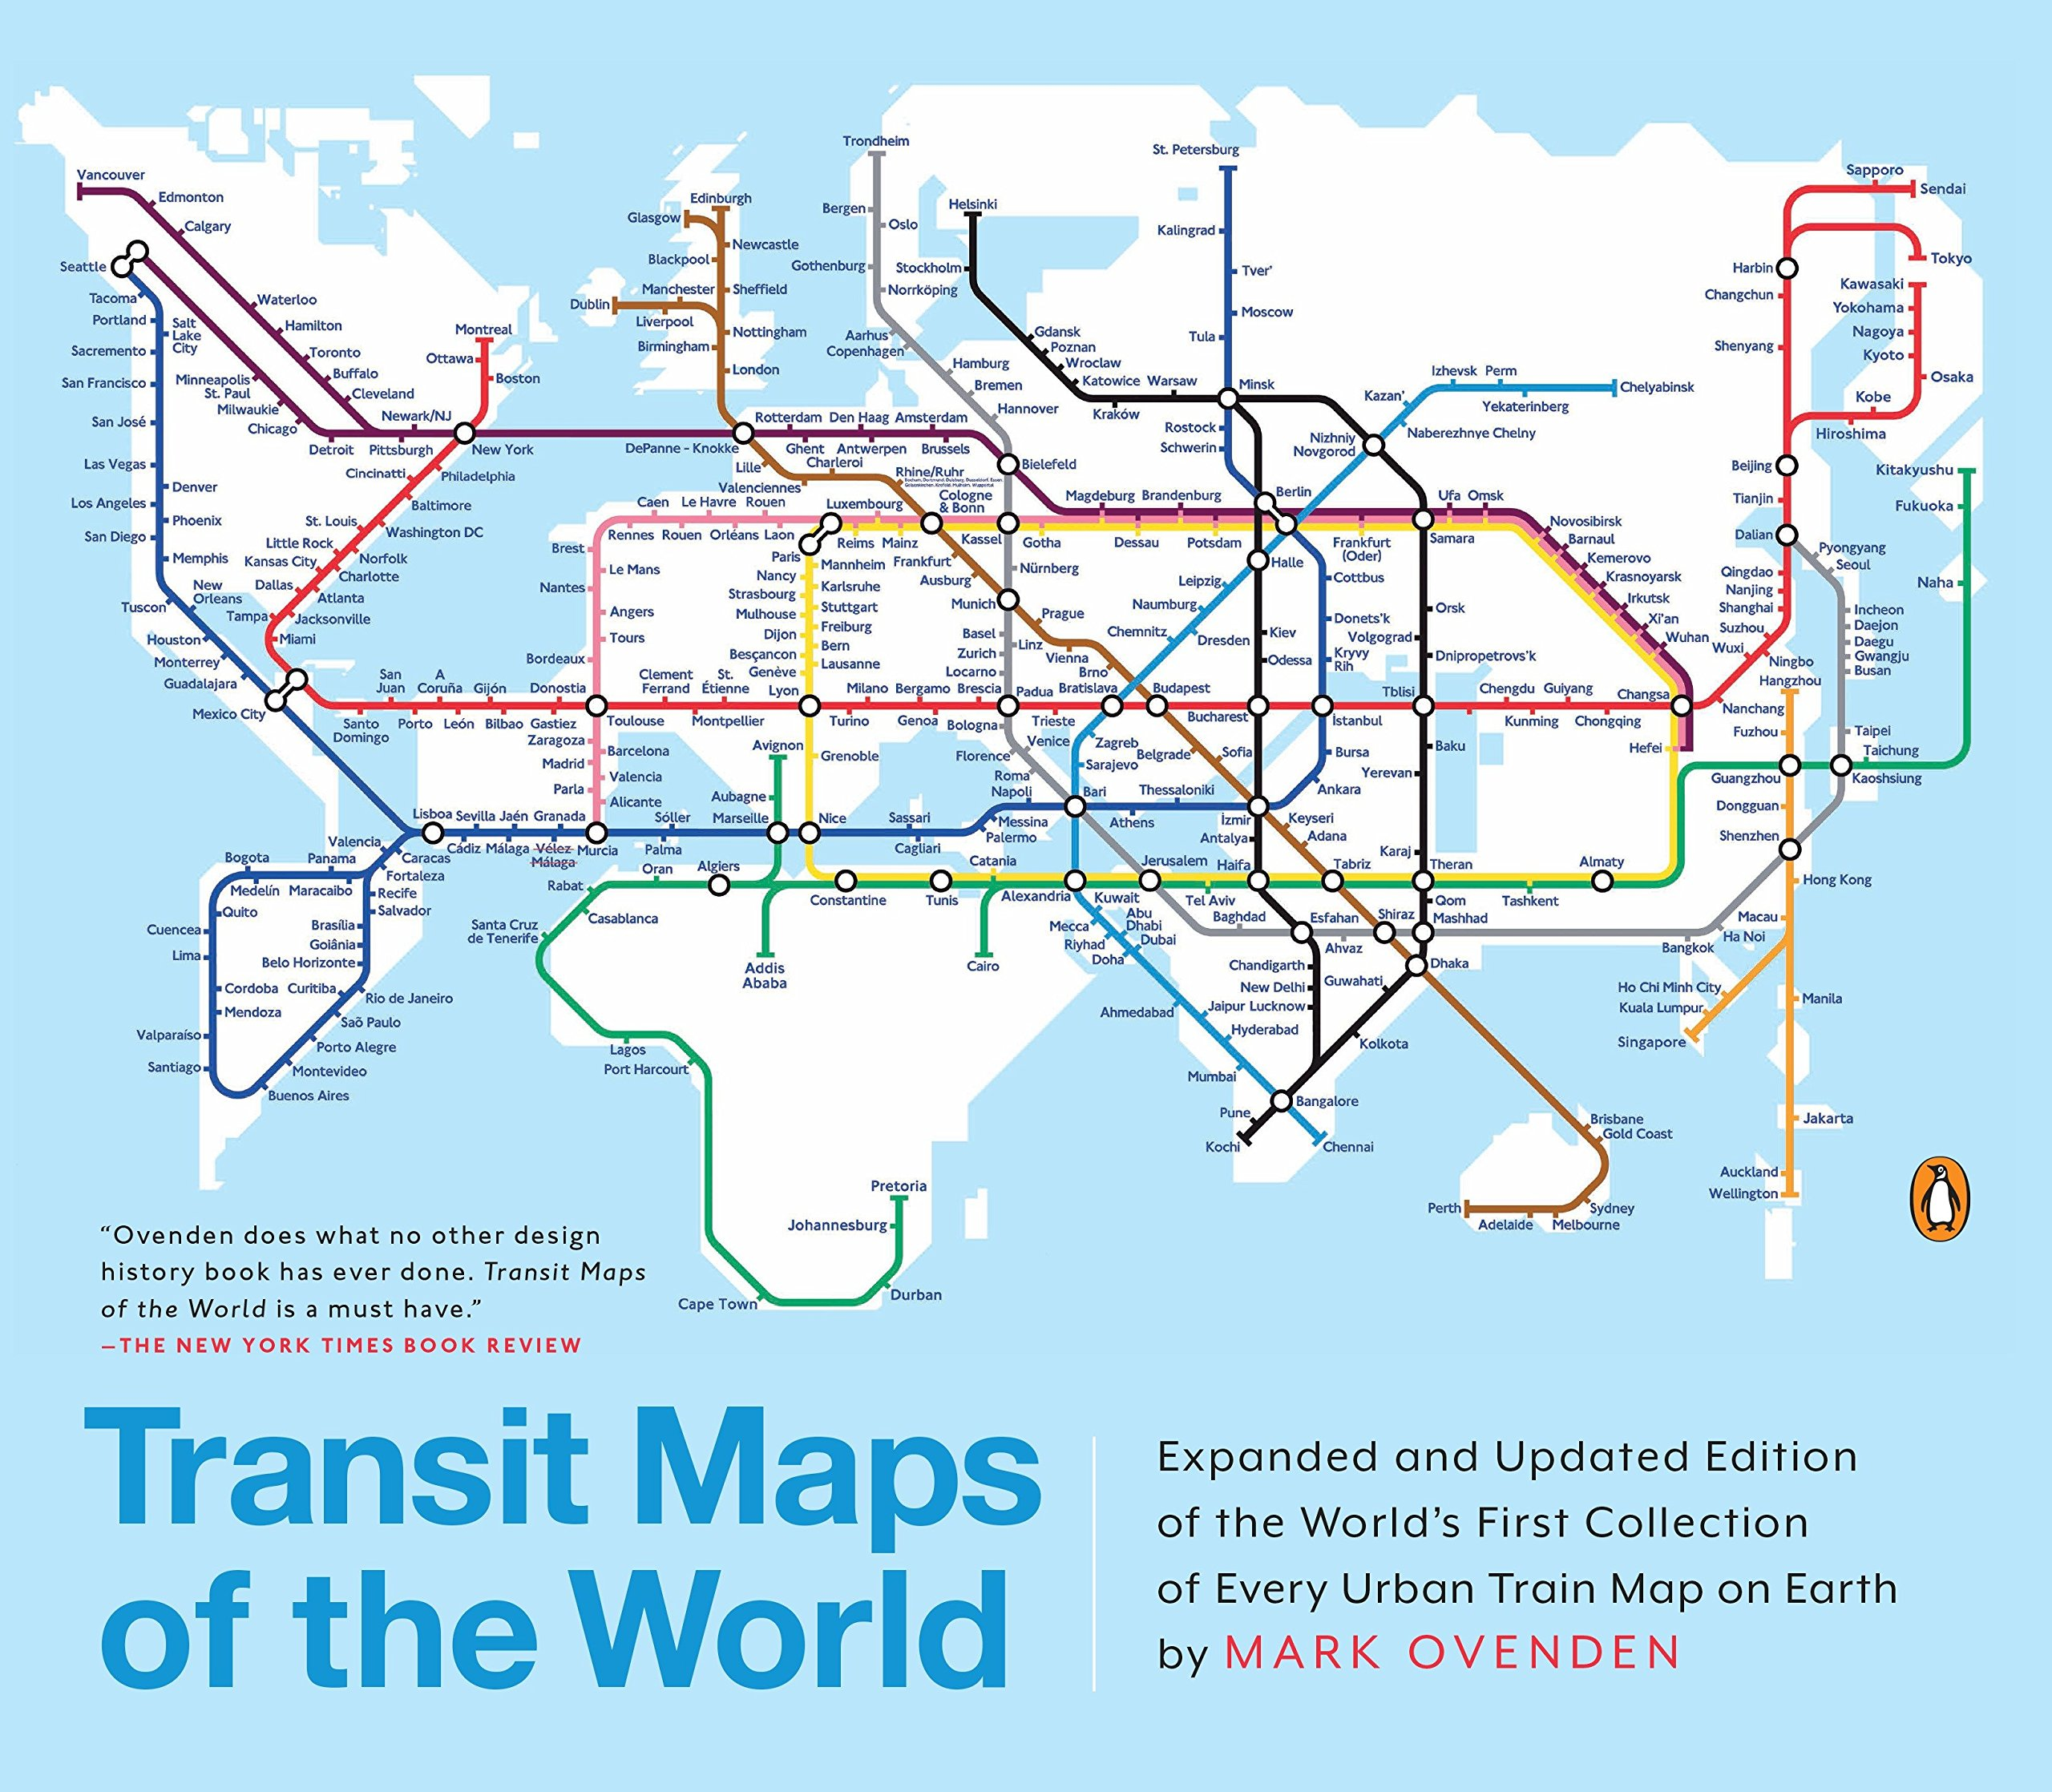 Train Subway Map New York.Transit Maps Of The World Expanded And Updated Edition Of The